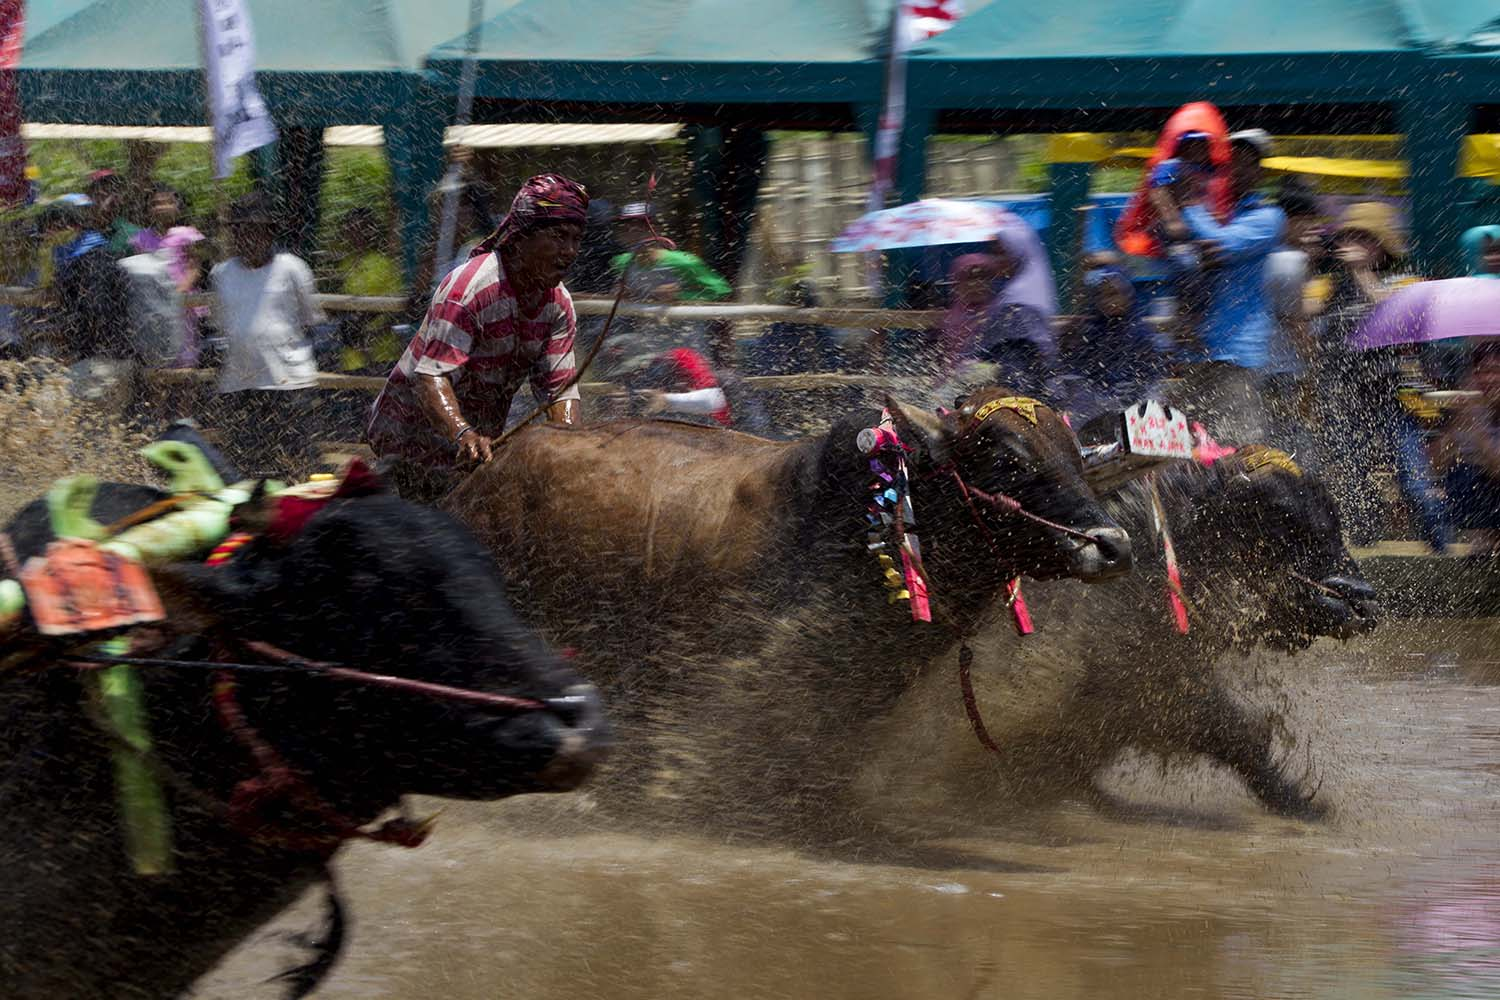 Participants charge across the wet field with their bulls. JP/Sigit Pamungkas